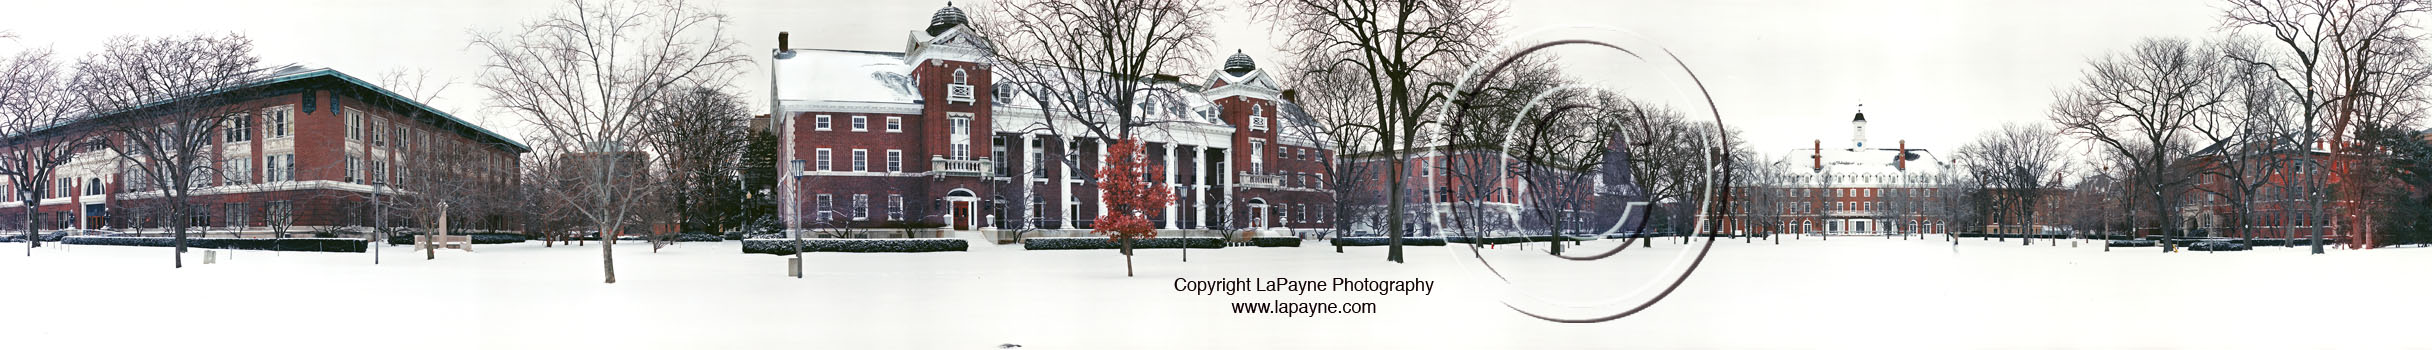 U of I Quad Covered in Snow